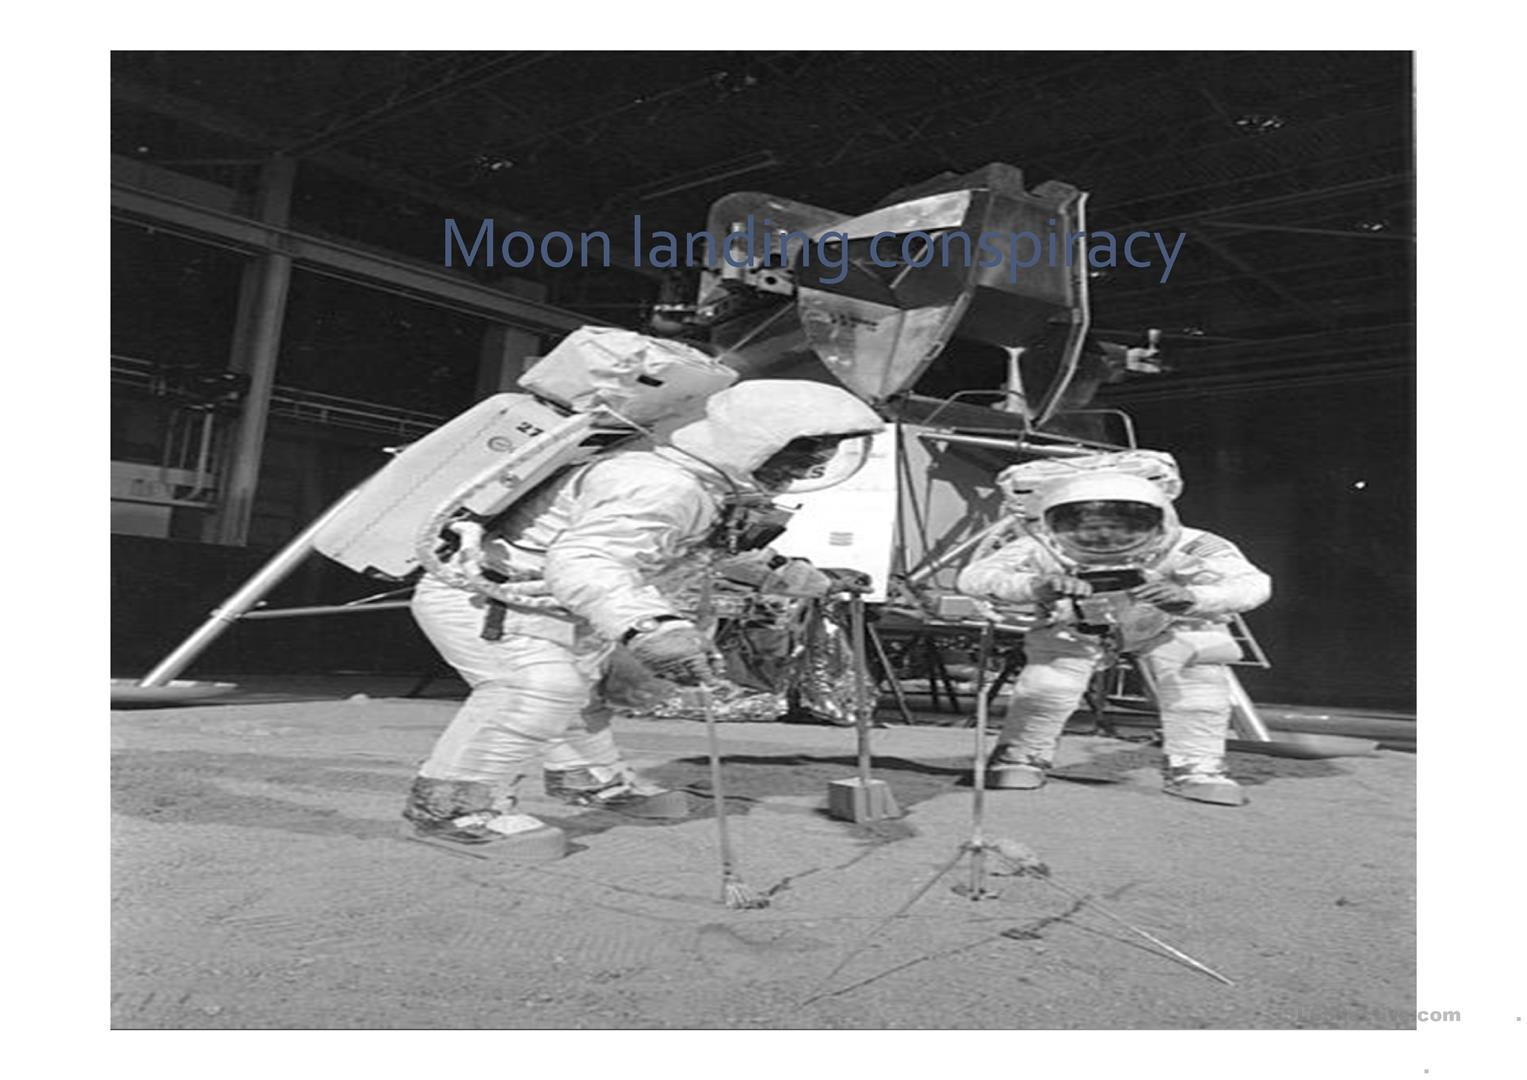 the moon landing conspiracy theory Latest moon landing conspiracy theory is crazier than ever omg | december 18, 2017 | jade lanegan the apollo moon landings were among the most covered media events in human history, with nearly a billion people following the apollo 11 moonwalk live as it happened however, that fact has not stopped a handful of conspiracy theorists.